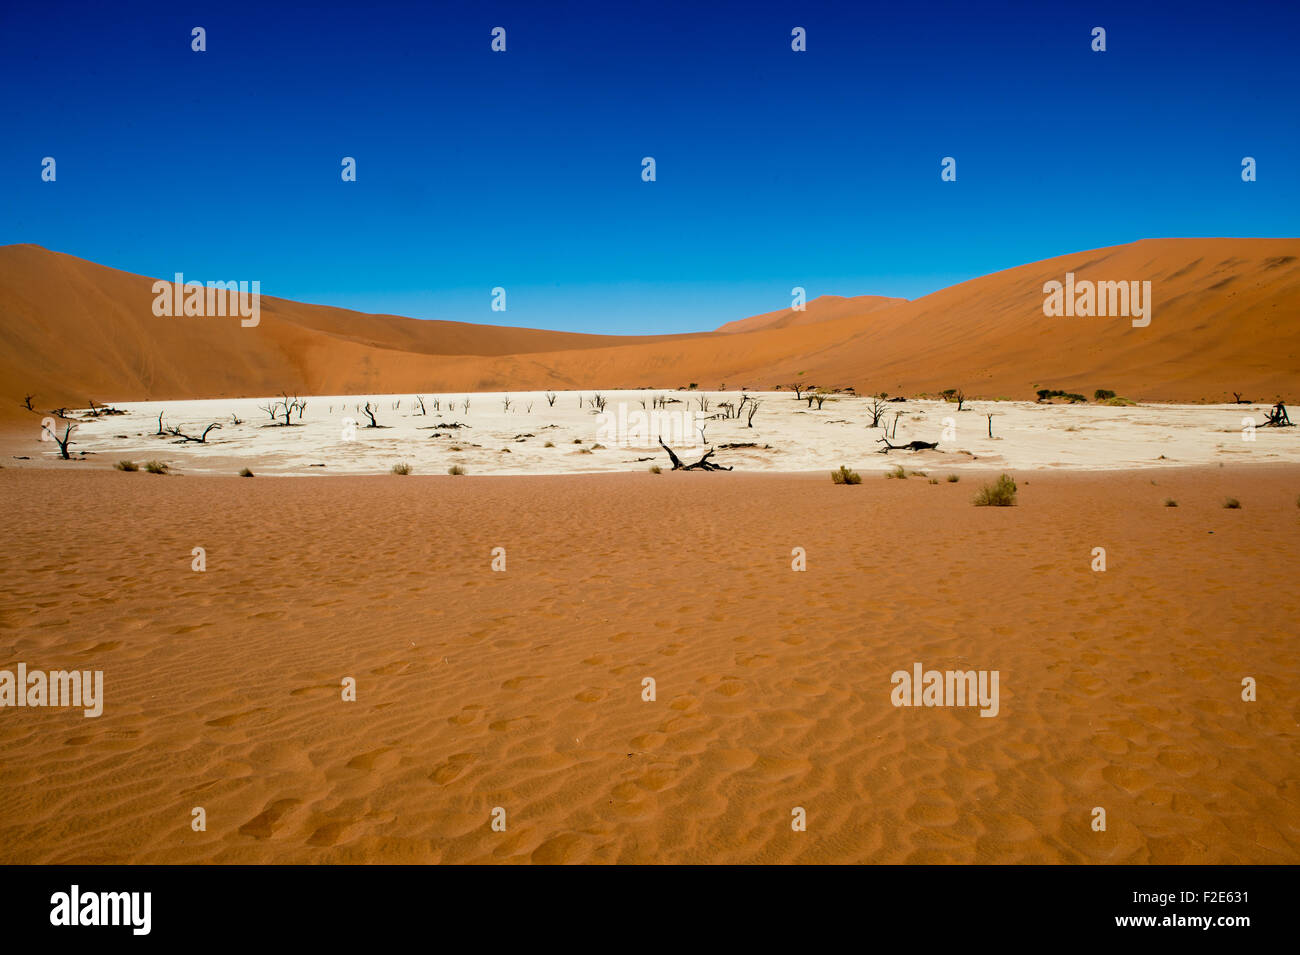 Deadvlei pan and dunes, Estimated 900 year old dead camel thorn trees in Namib-Naukluft National Park, Namibia Africa - Stock Image